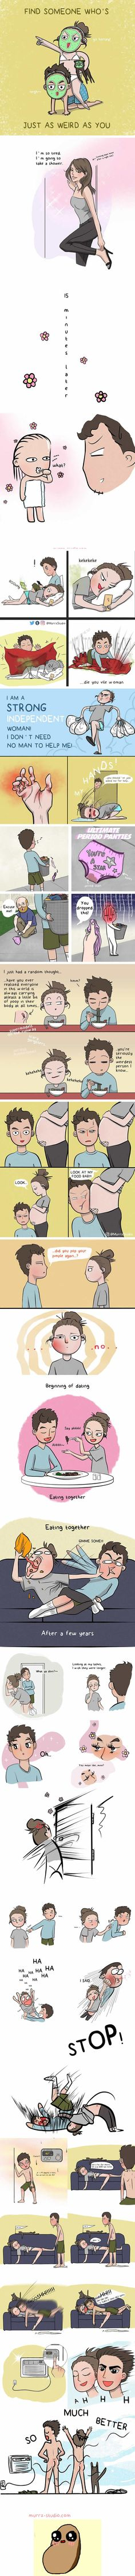 13 Adorable Comics Show What It's Like To Be In A Comfortable Relationship